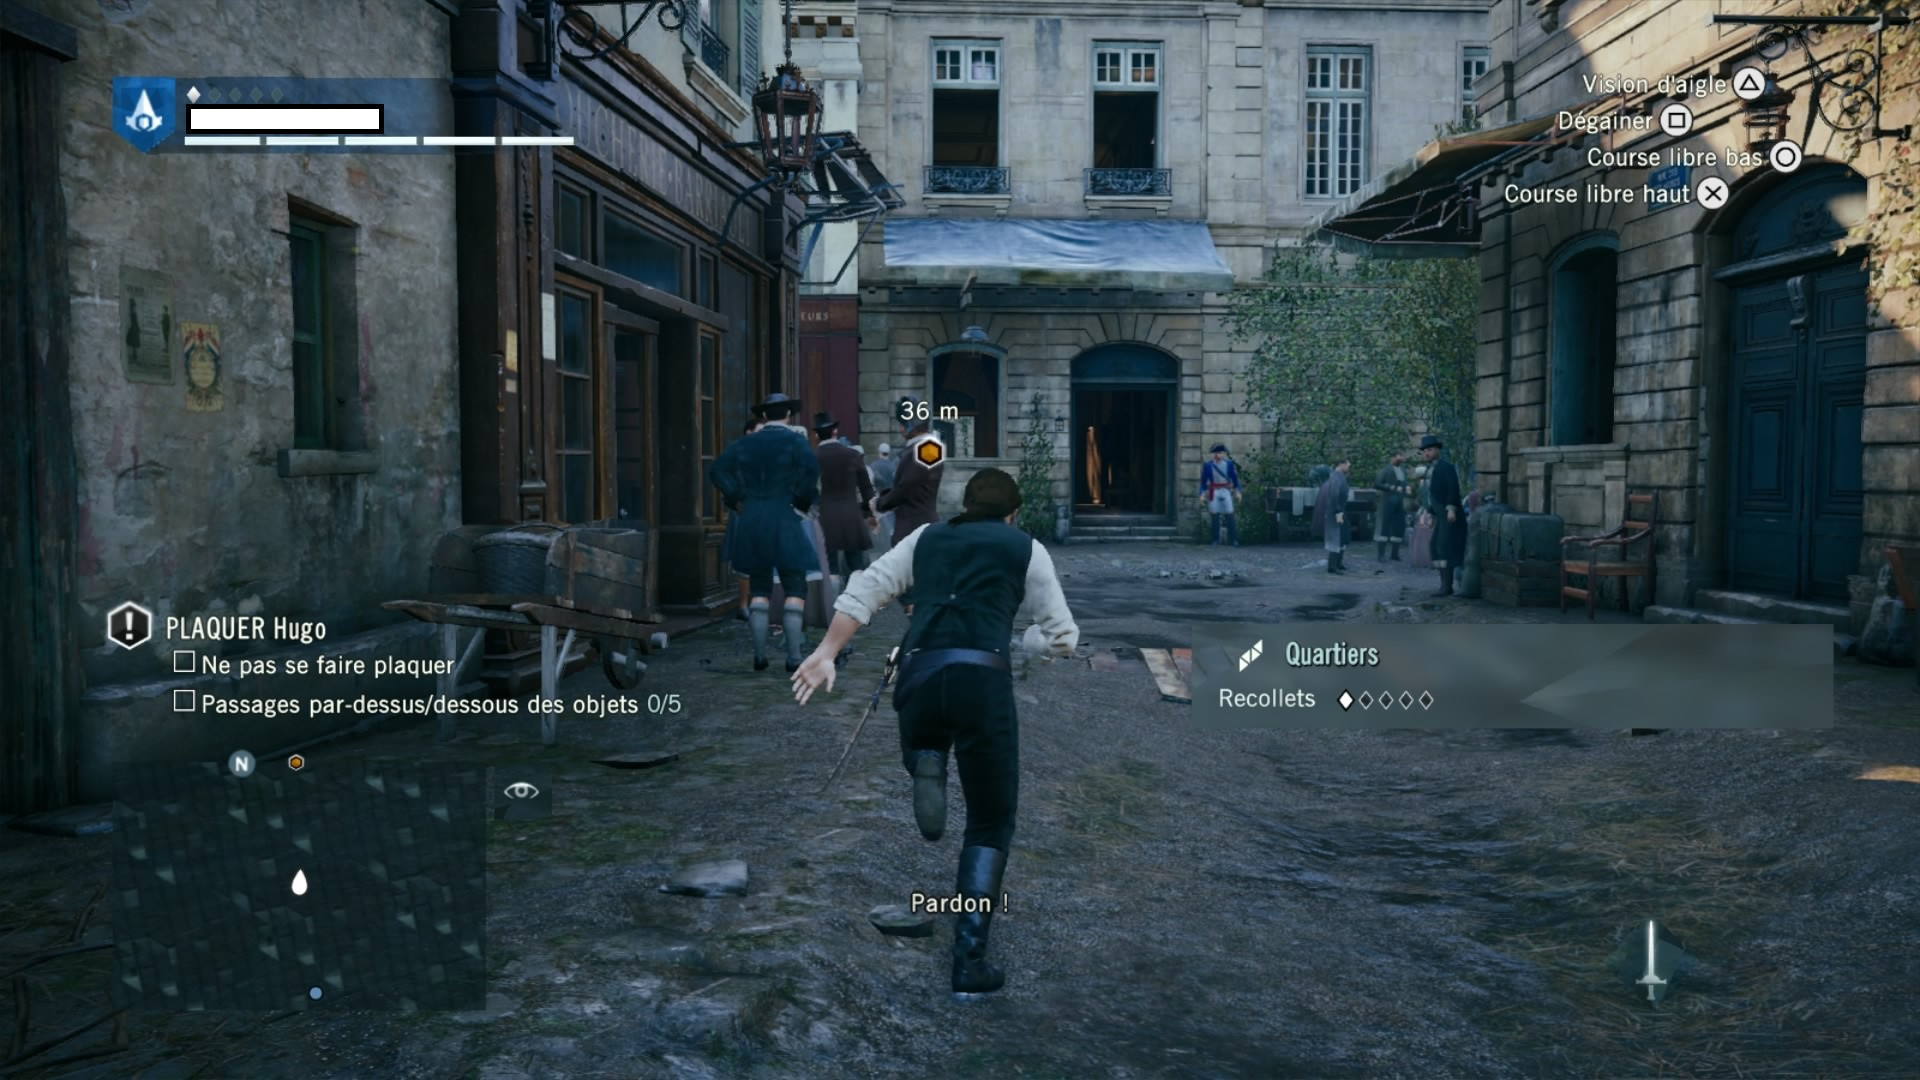 In-game obrázky z Assassin's Creed: Unity 101835